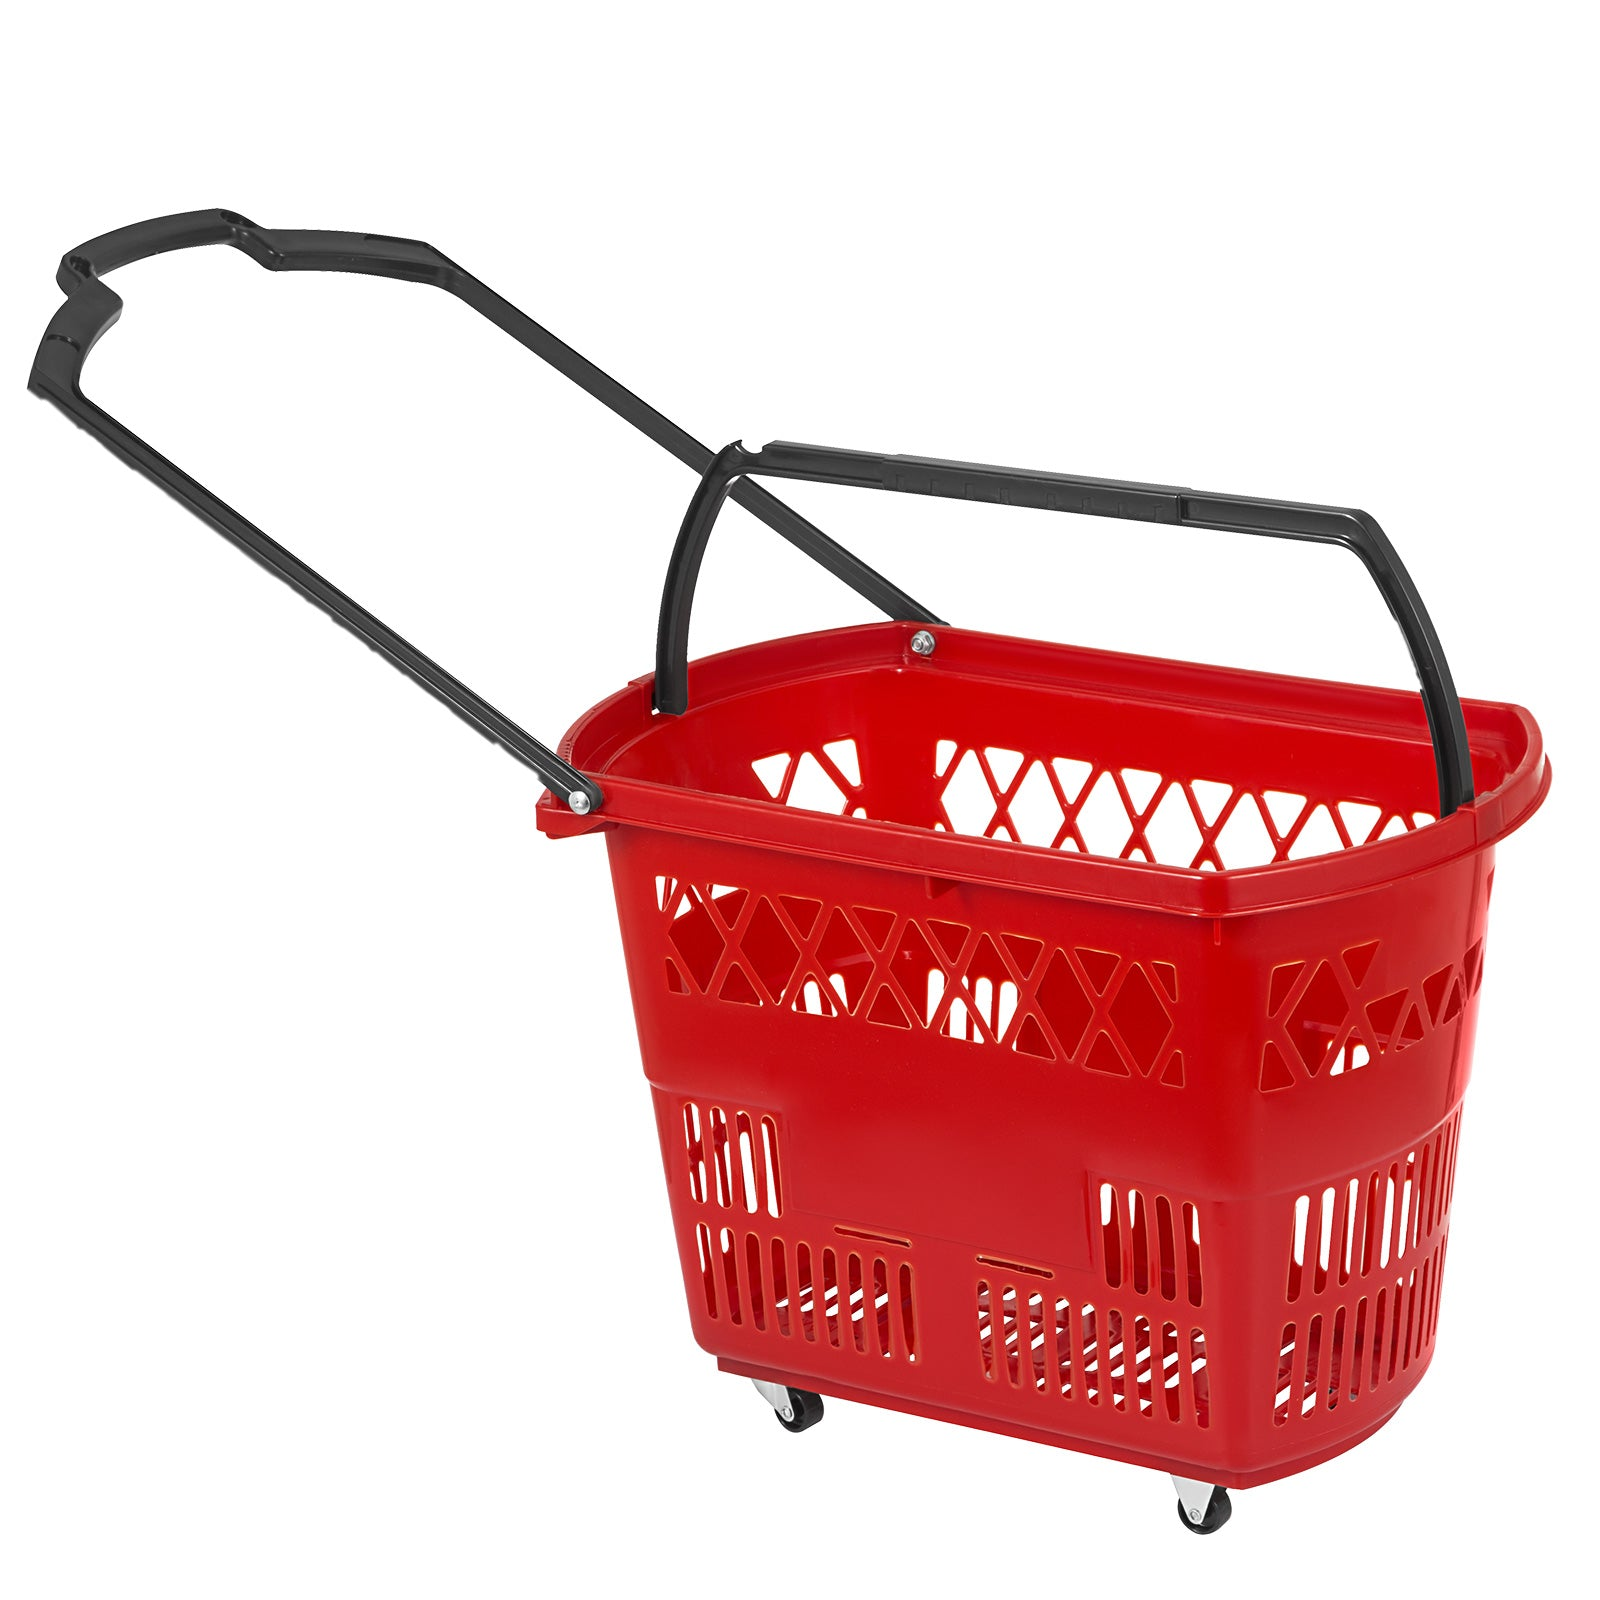 6pcs Red Shopping Basket 21x13.2x14.3in Plastic Supermarket Metal Handles Hot